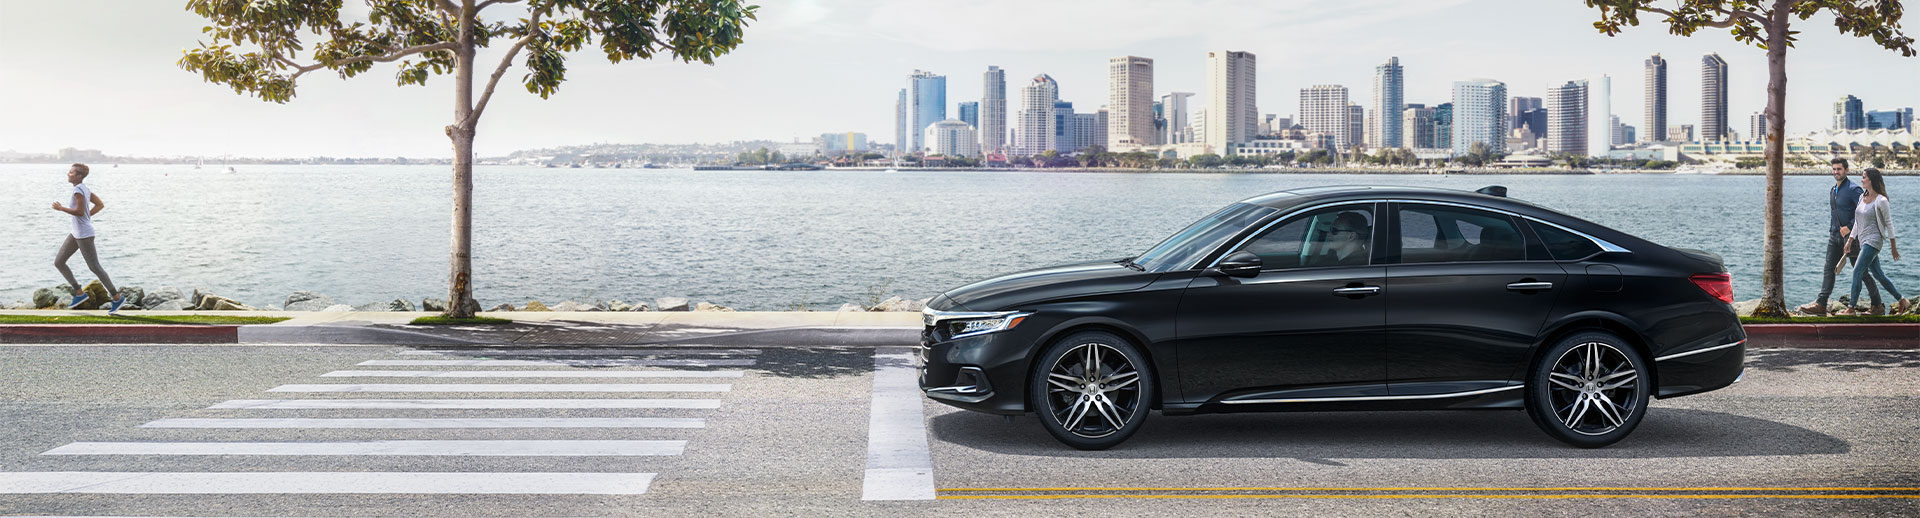 2021 Honda Accord Lifestyle Photo